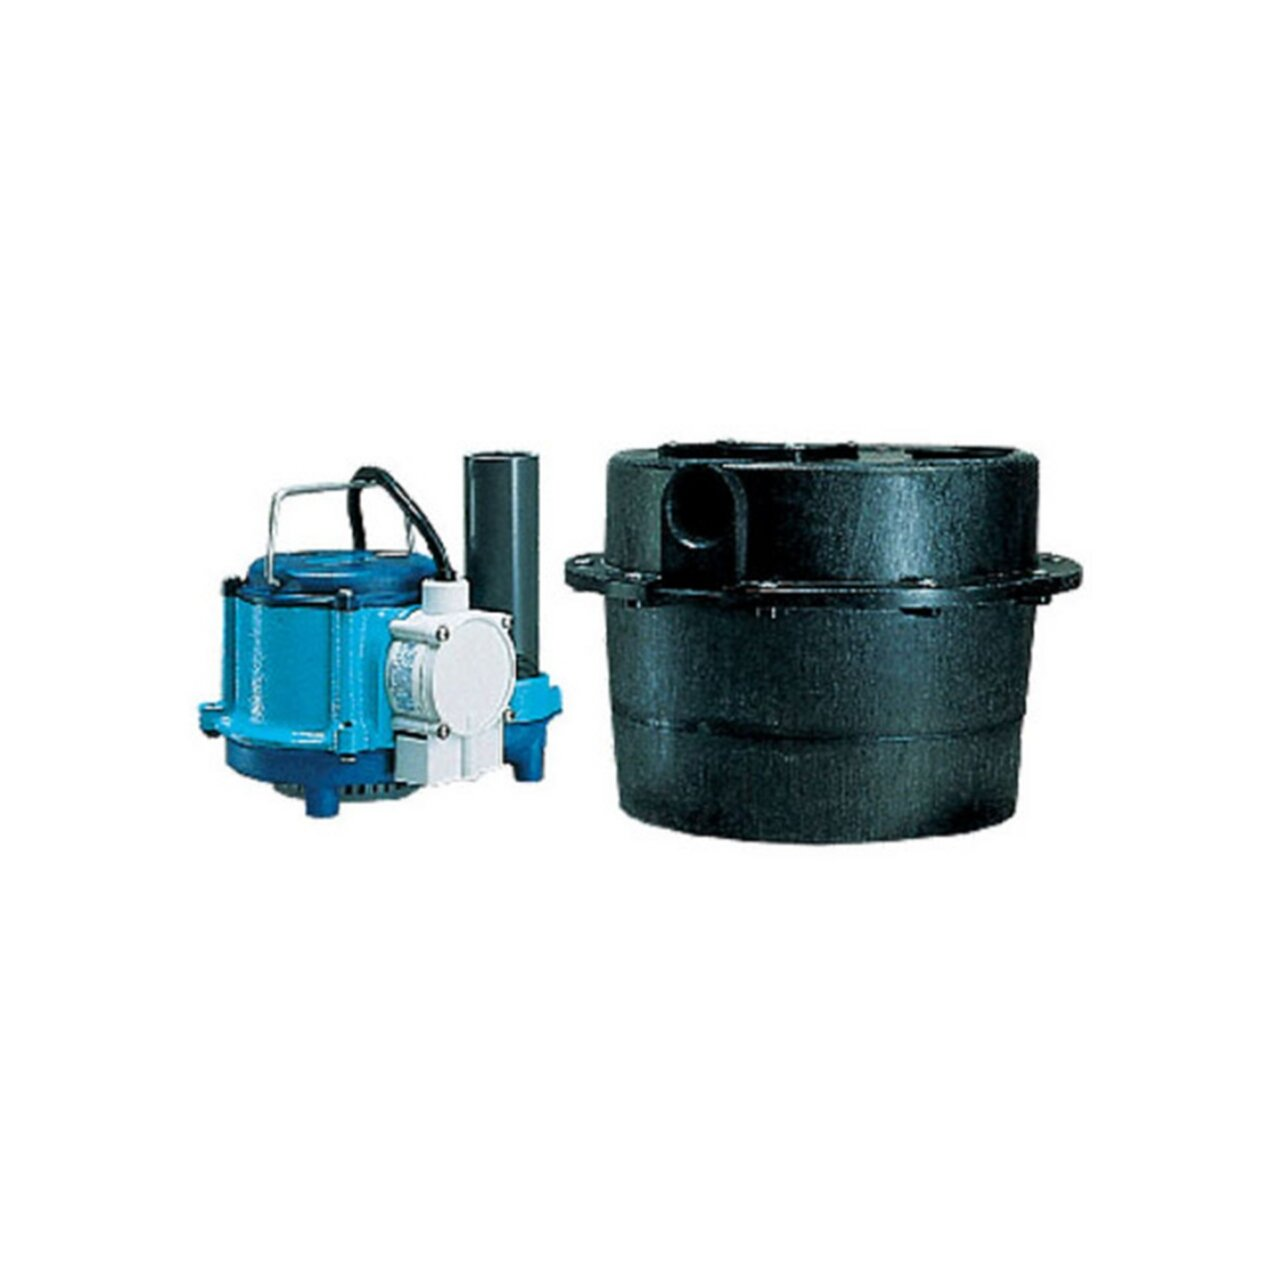 Little Giant WRSC-6 Compact Drainosaur Tank and Pump Combination System by LITTLE GIANT